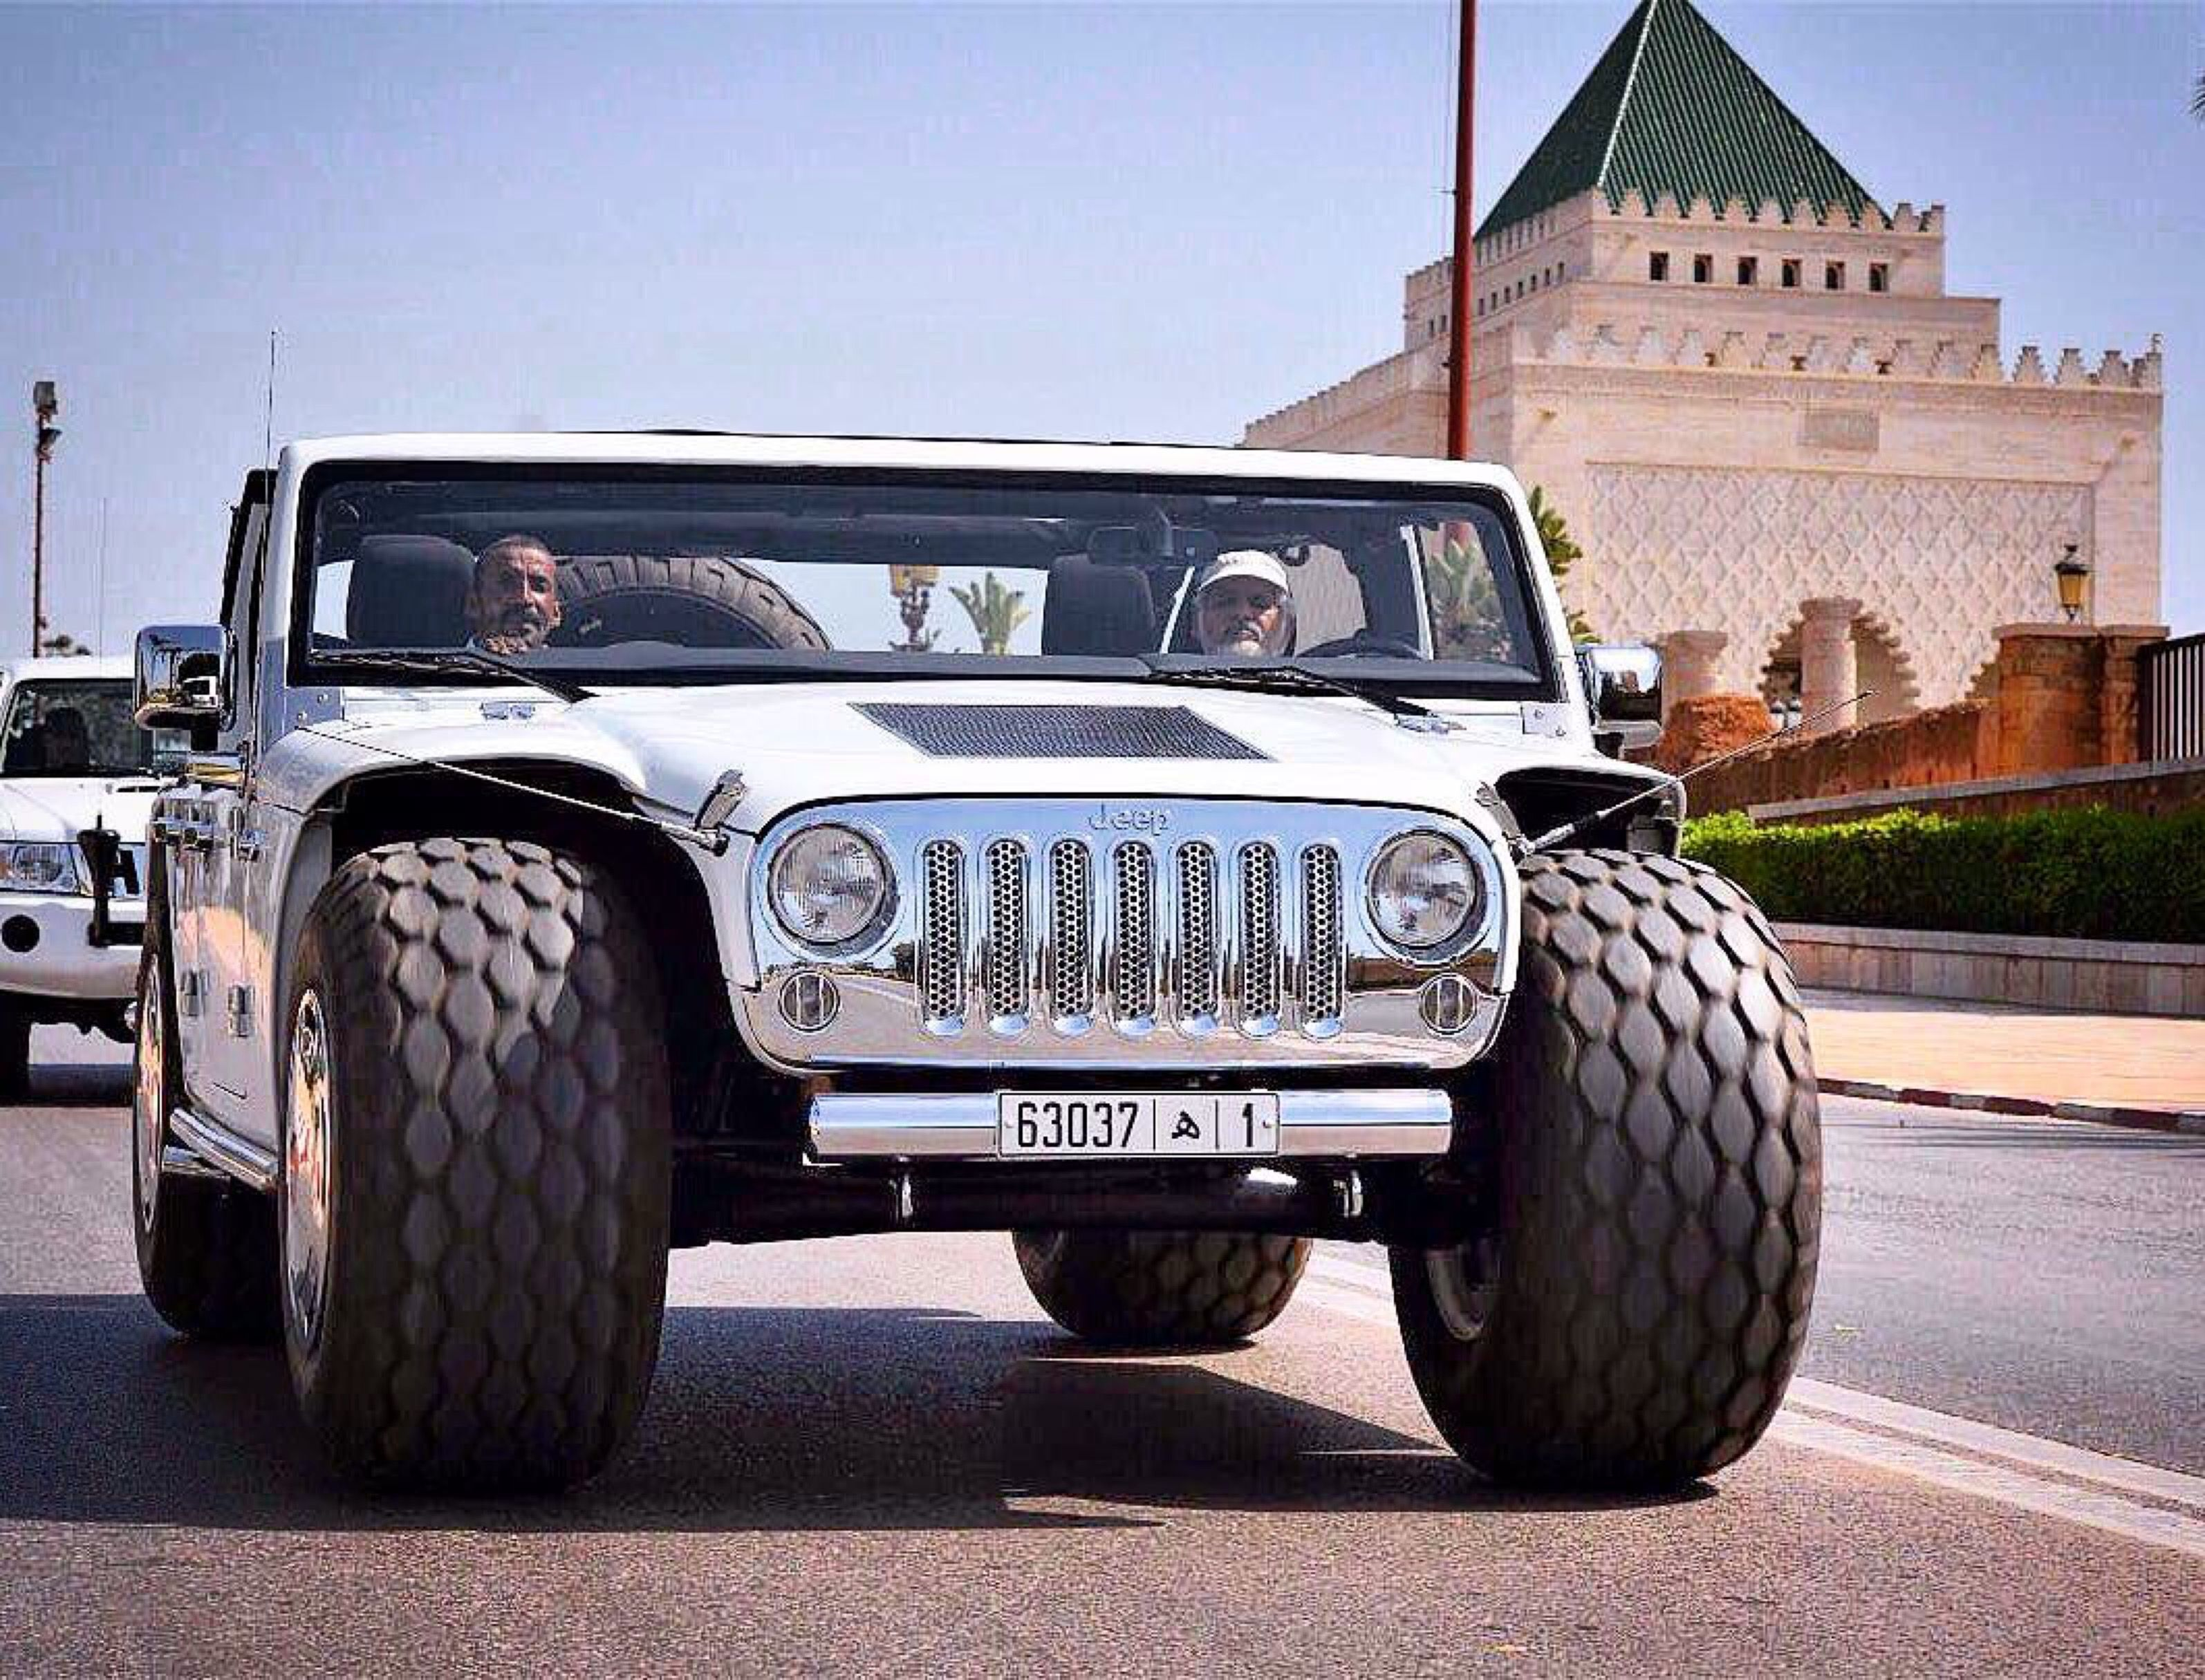 The Hummer Hx Electric Car Is The Revival Of The Hummer Brand Hummer Hx Hummer Hummer Truck